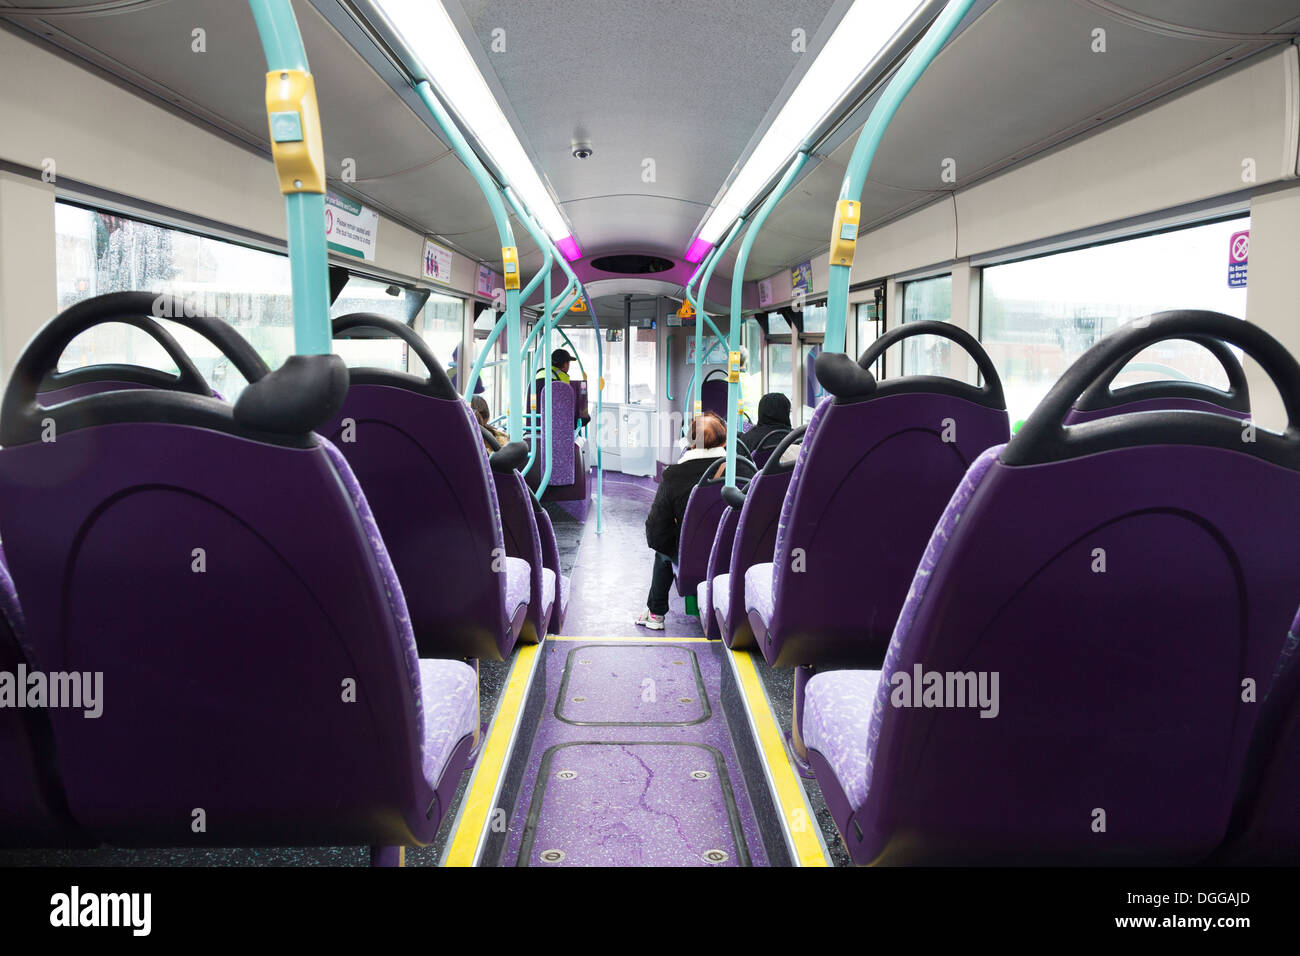 view from rear of single decker public bus - Stock Image